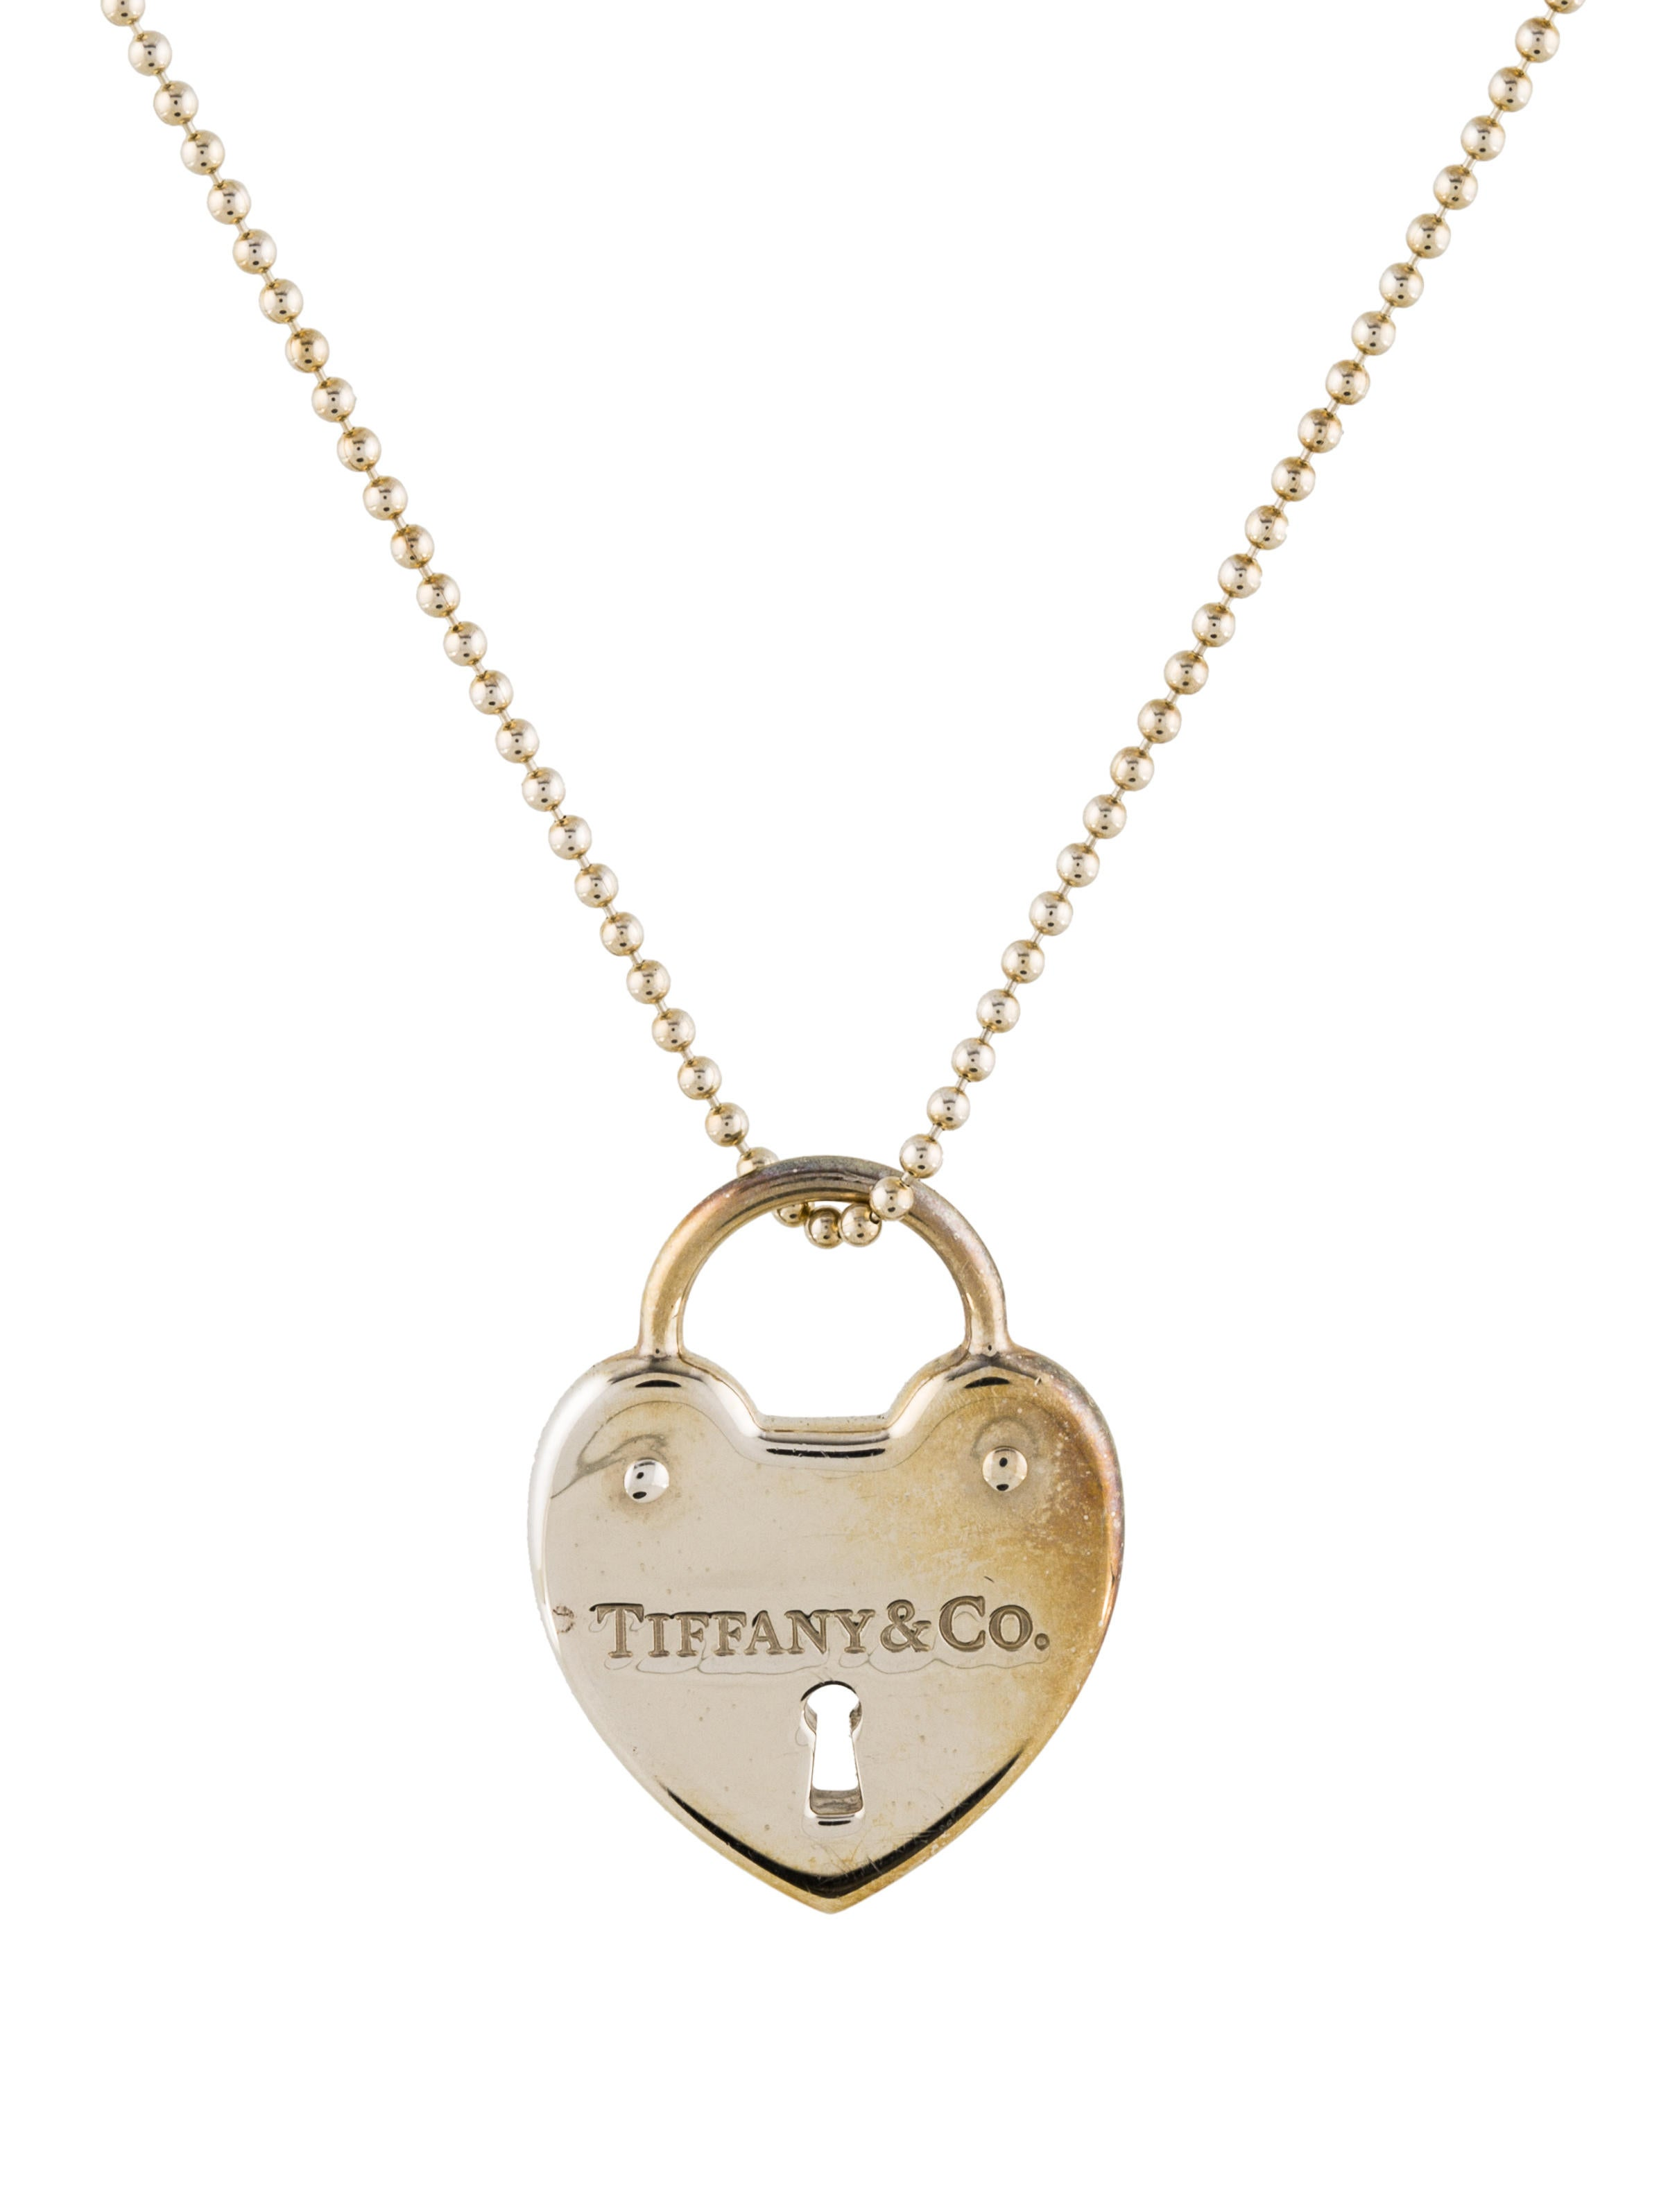 Tiffany Amp Co Heart Lock Pendant Necklace Necklaces